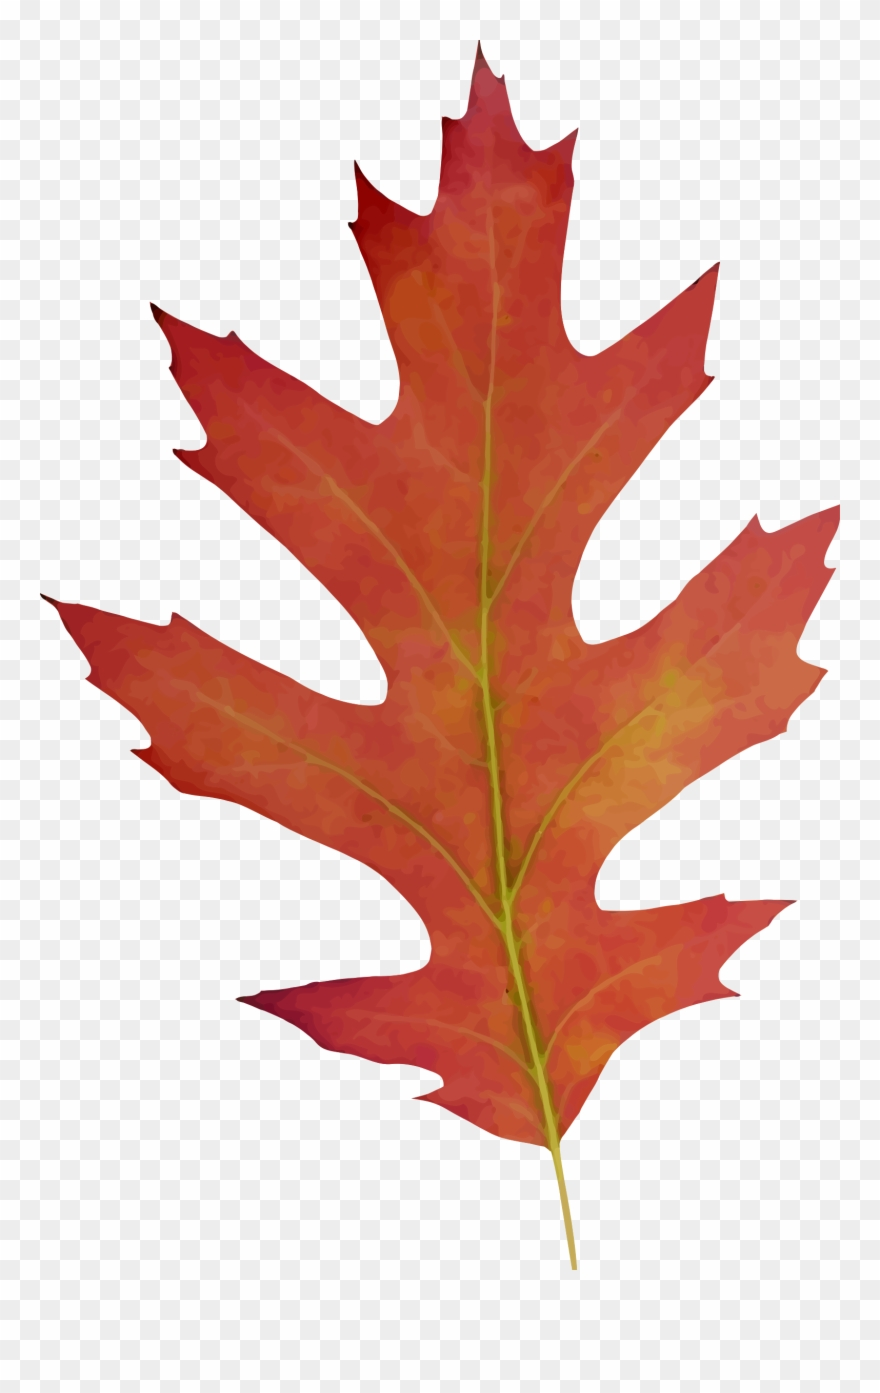 Big fall leaf clipart picture free library Big Image - Oak Leaf Fall Drawing Clipart (#2702) - PinClipart picture free library